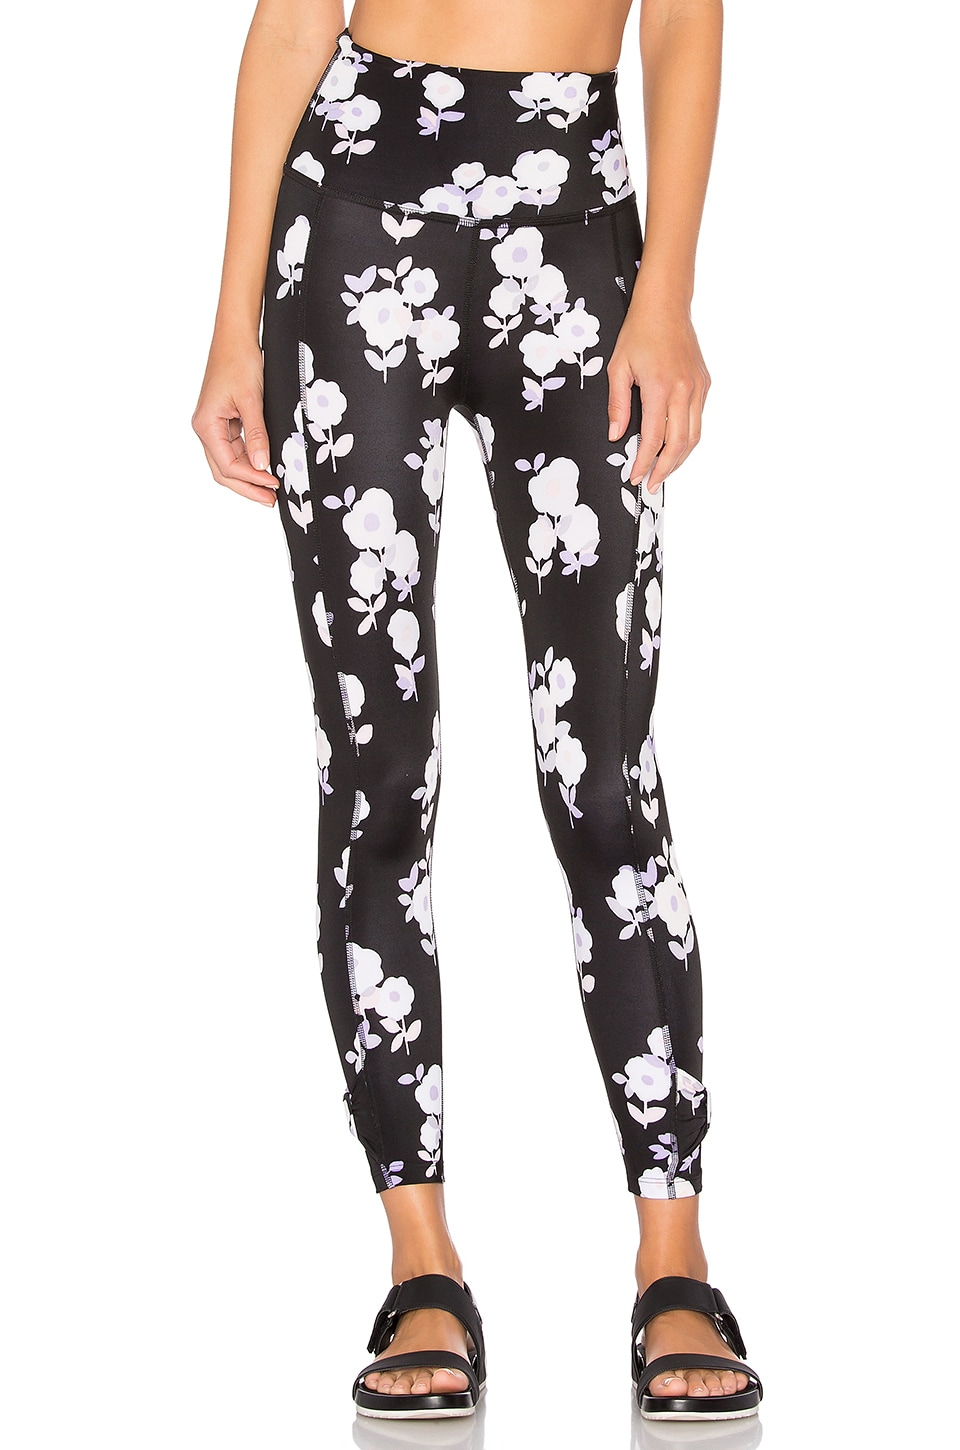 x kate spade Cinched Side Bow Legging by Beyond Yoga